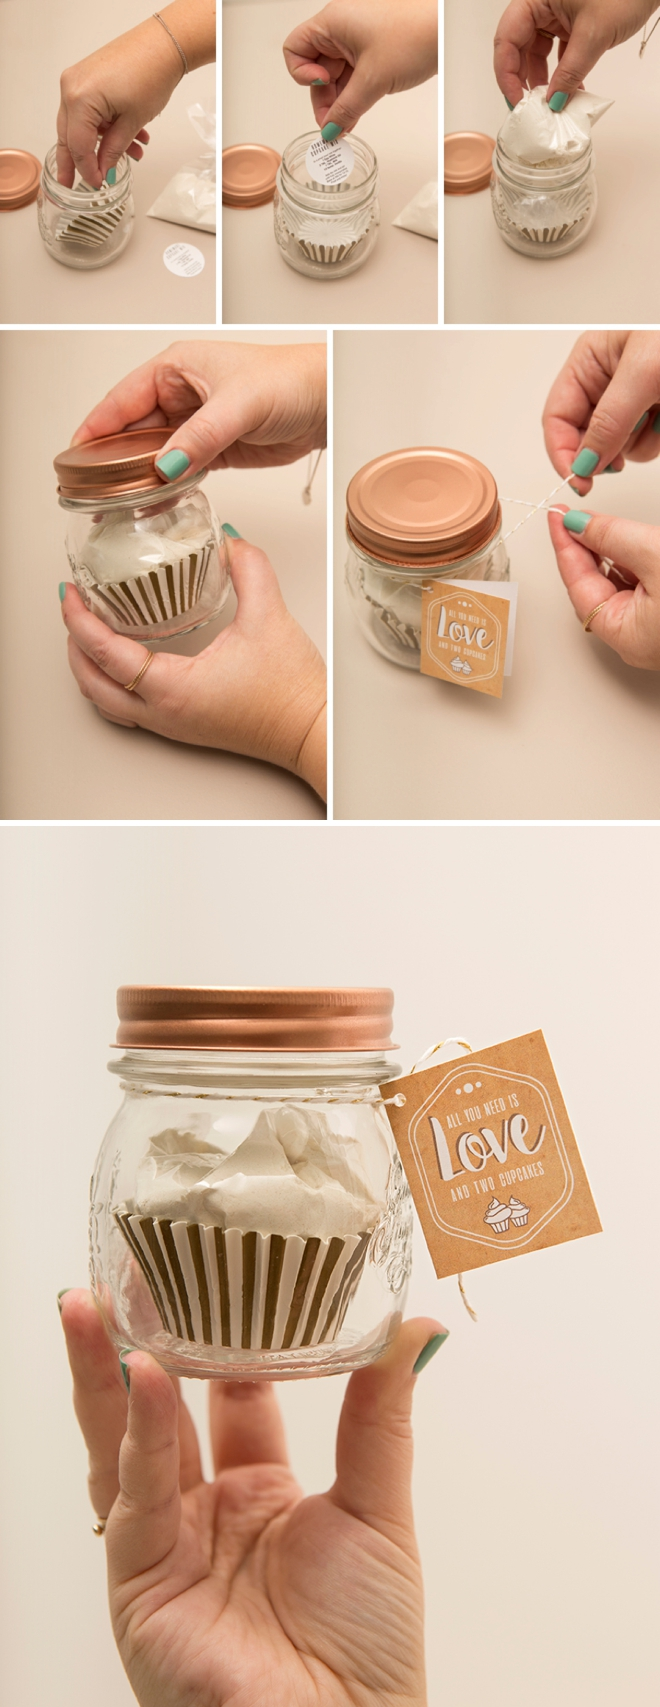 You have to see this 2 cupcake mix favor jar solutioingenieria Gallery